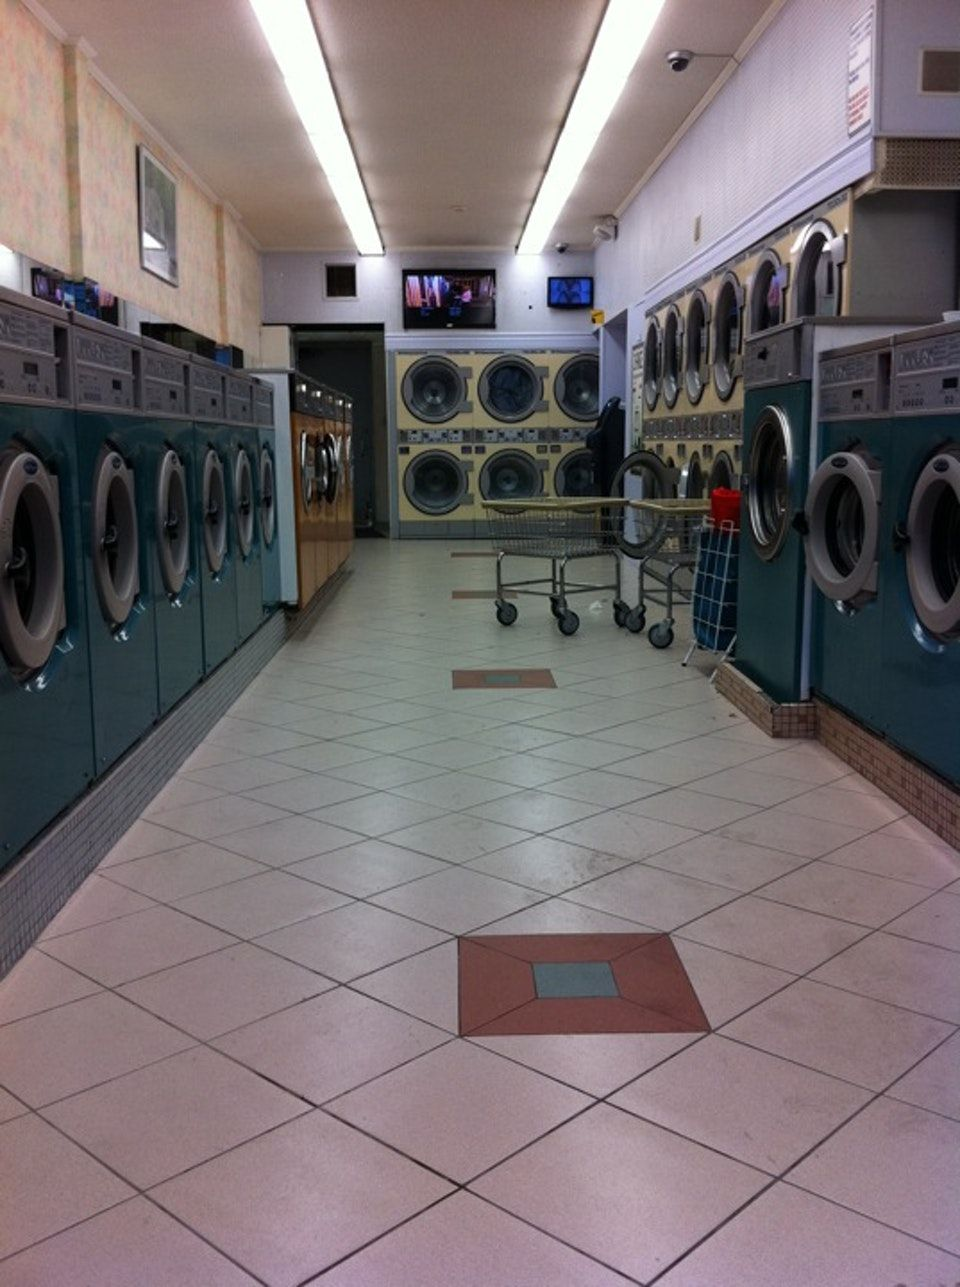 College Laundromat Laundry Service In Dufferin Grove In 2020